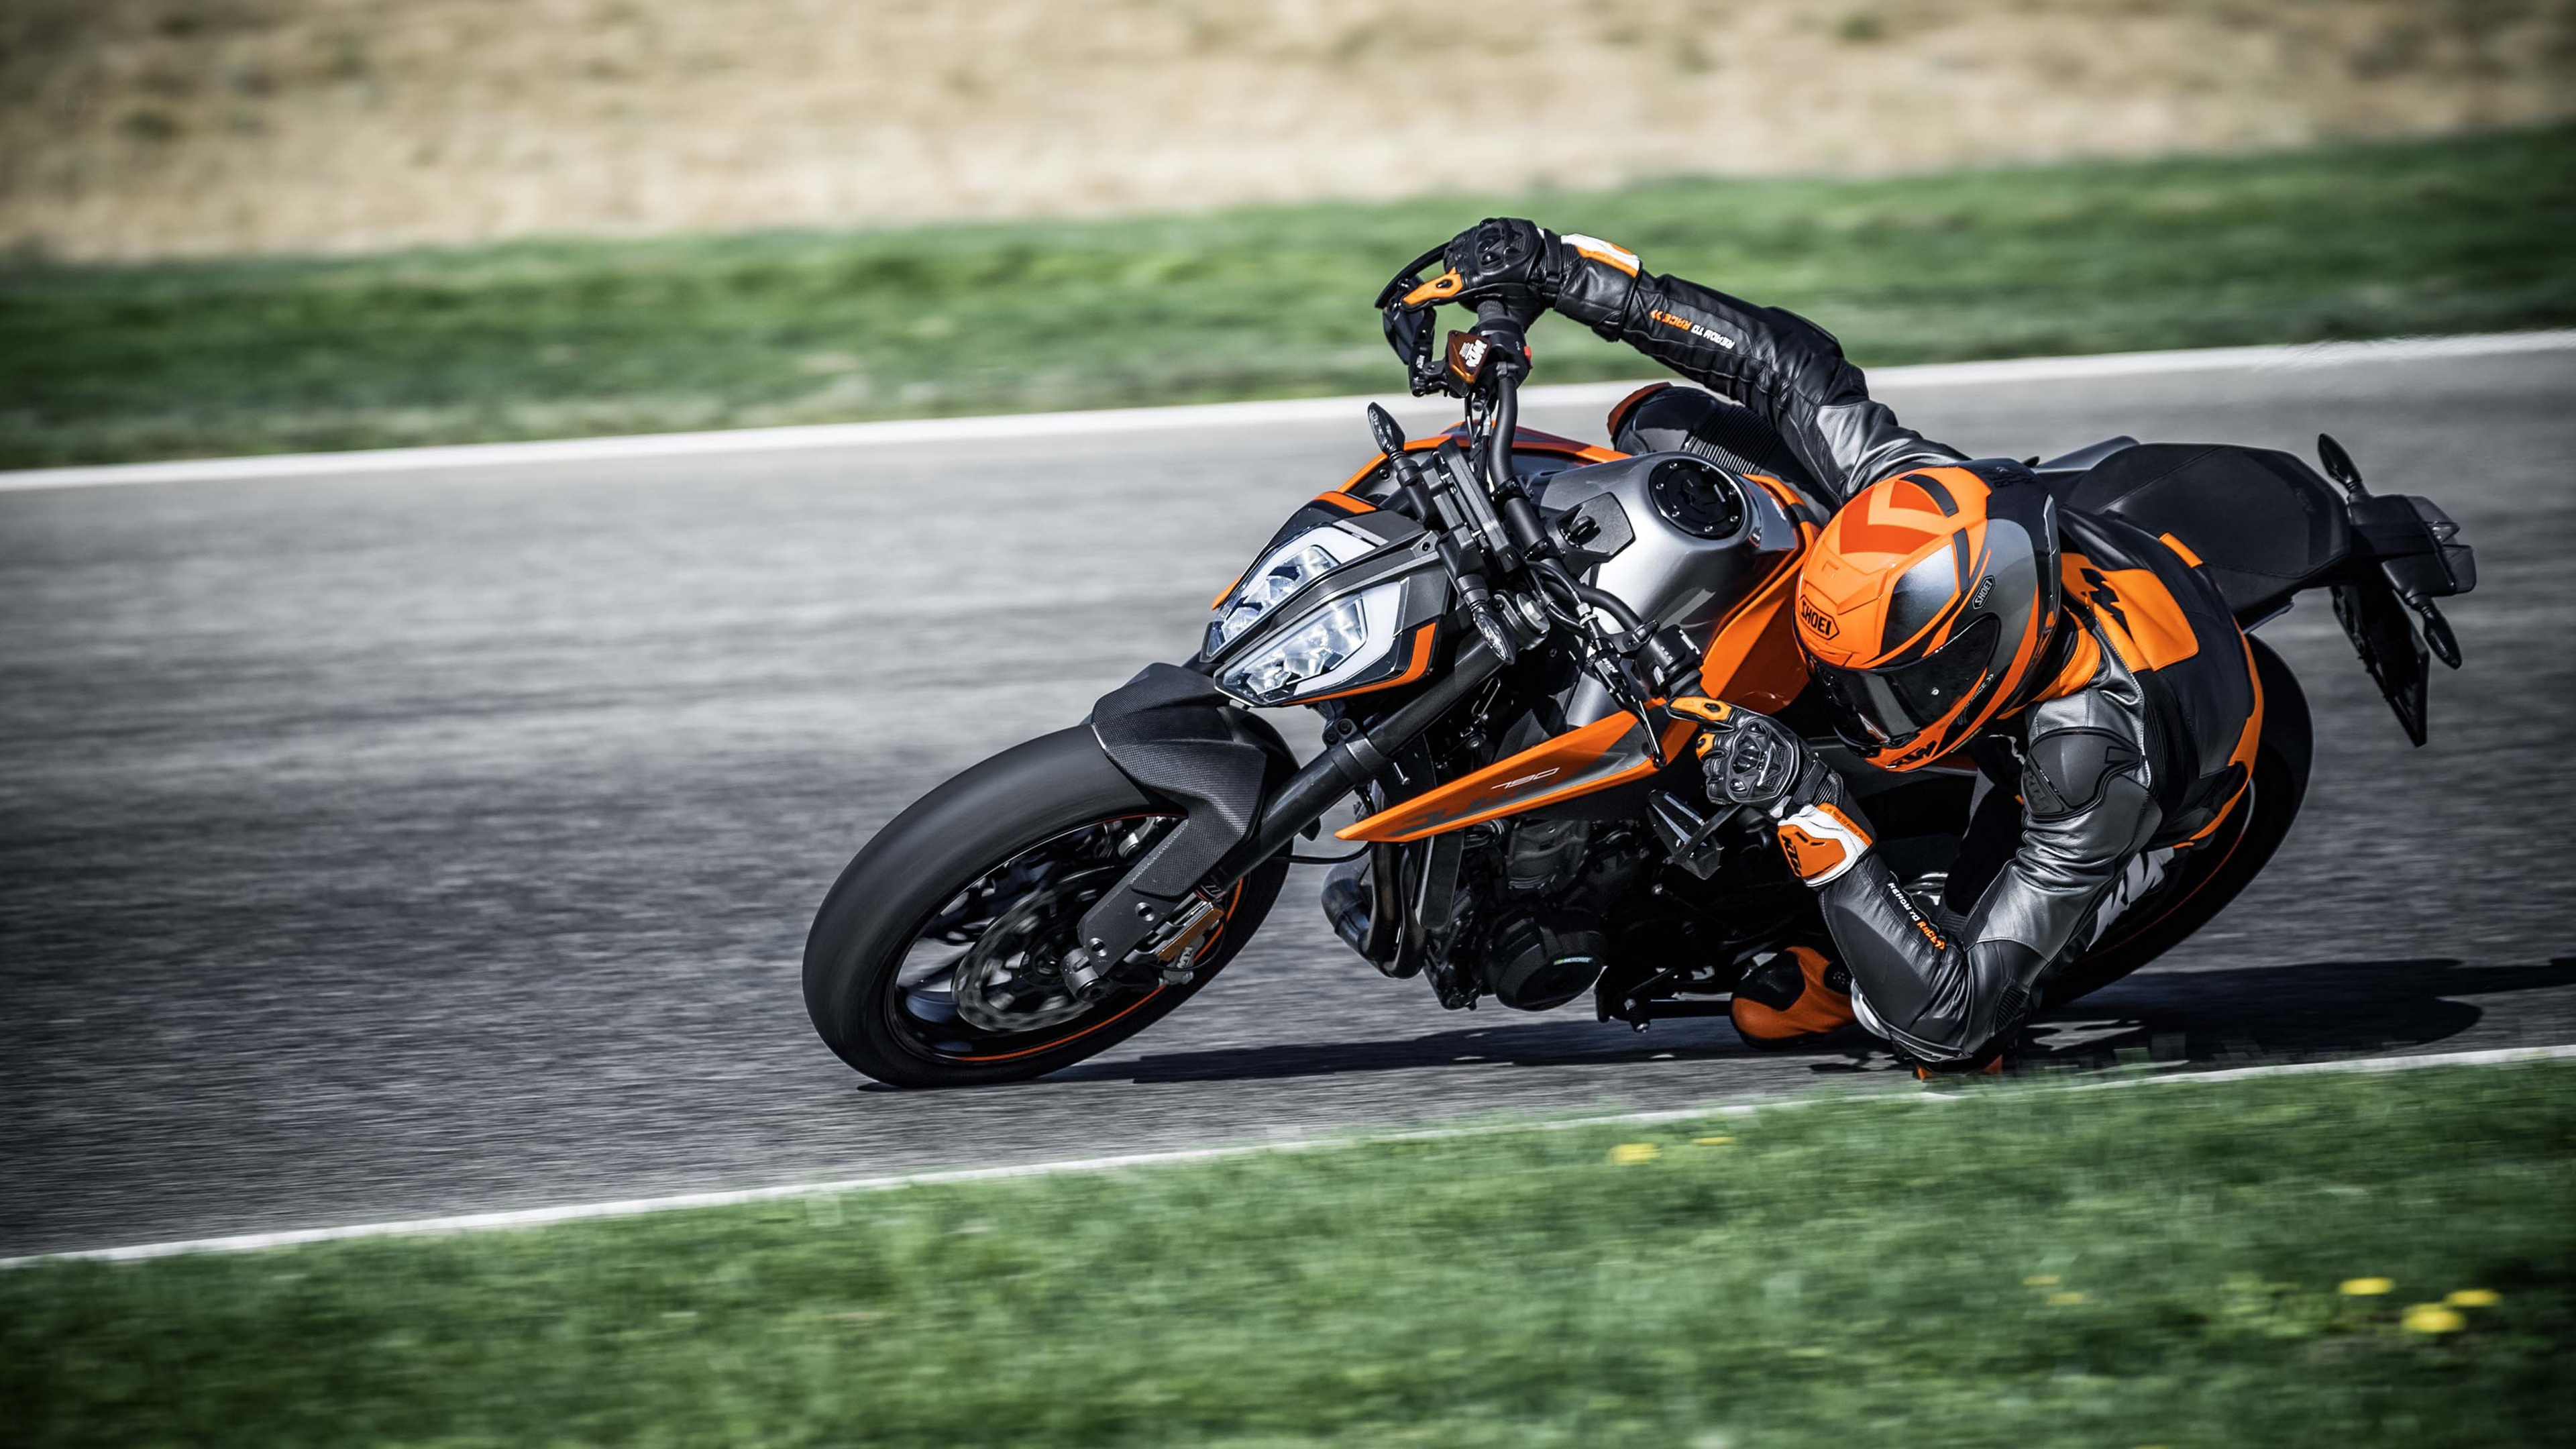 2018 KTM 790 Duke 4K Wallpapers. ««